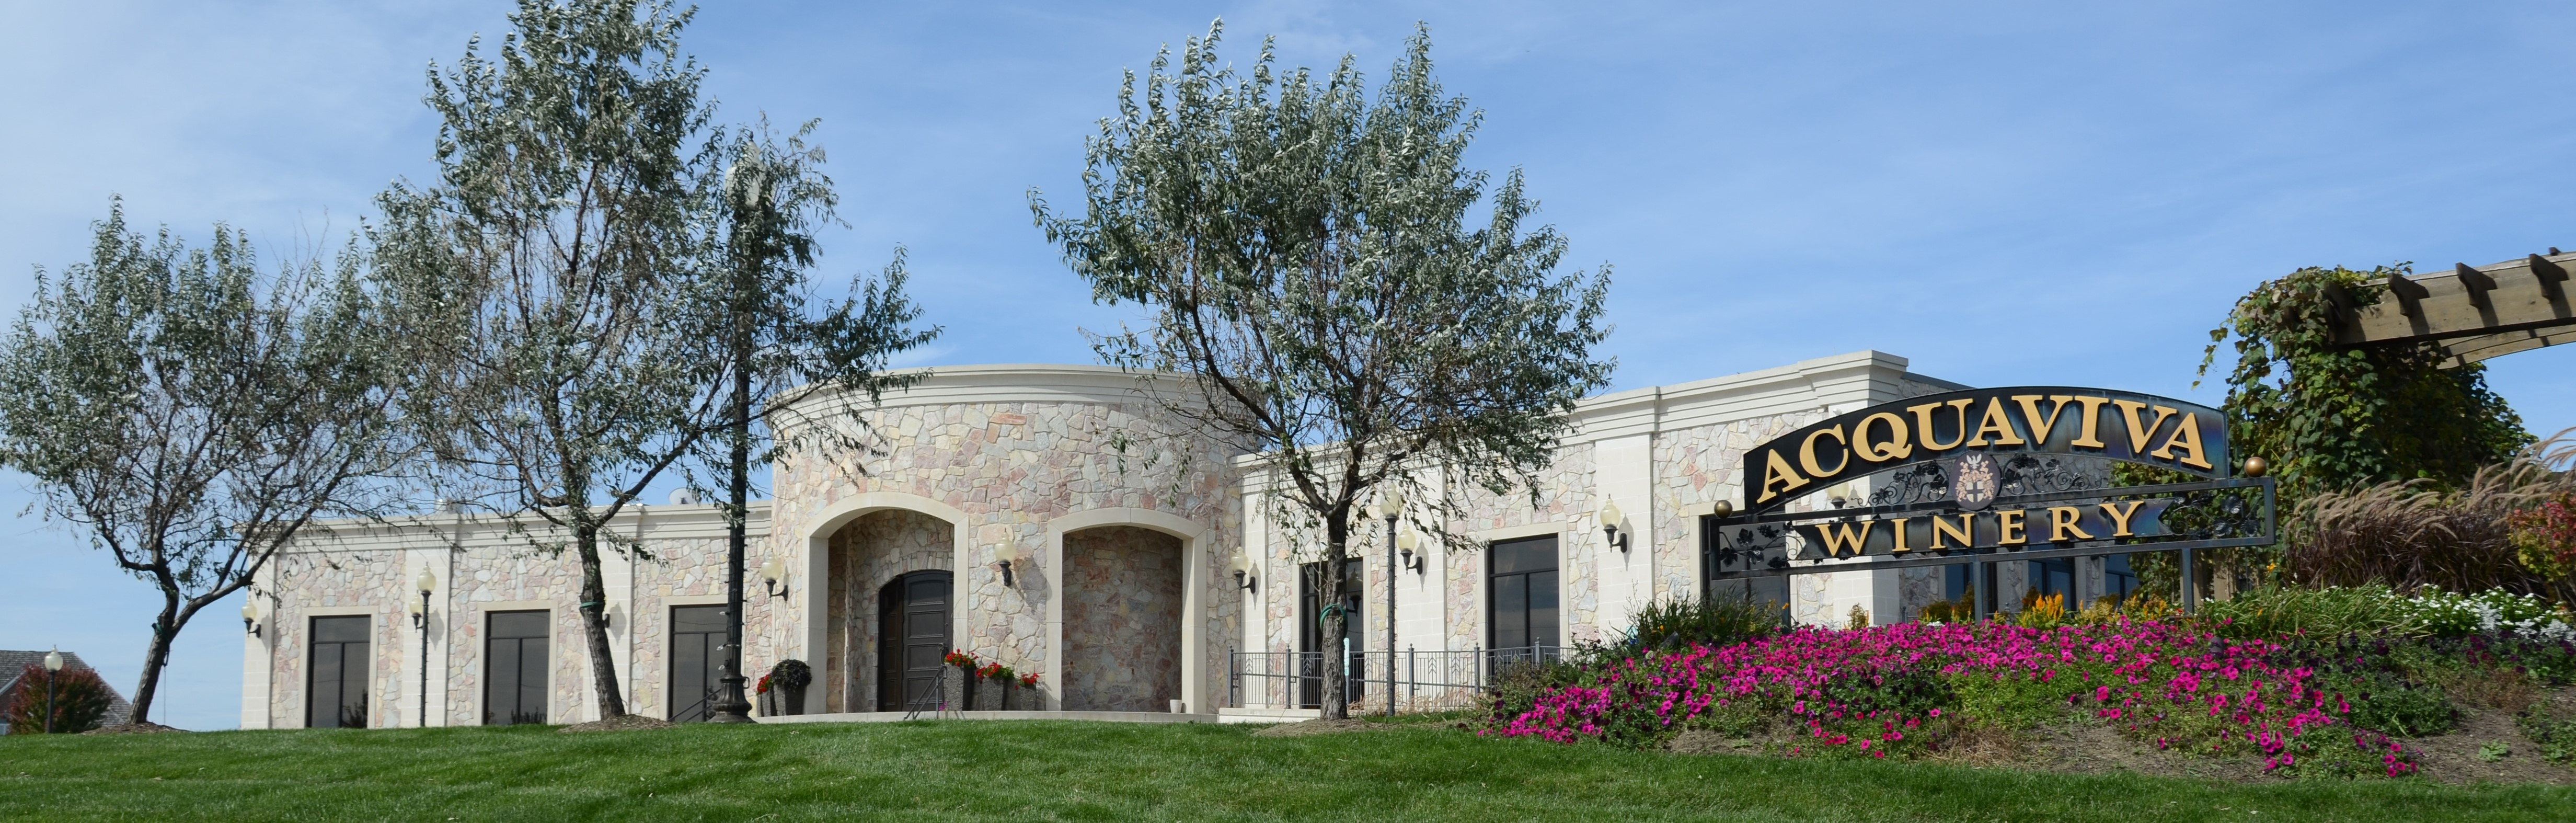 Mother's Day at Acquaviva Winery, Maple Park